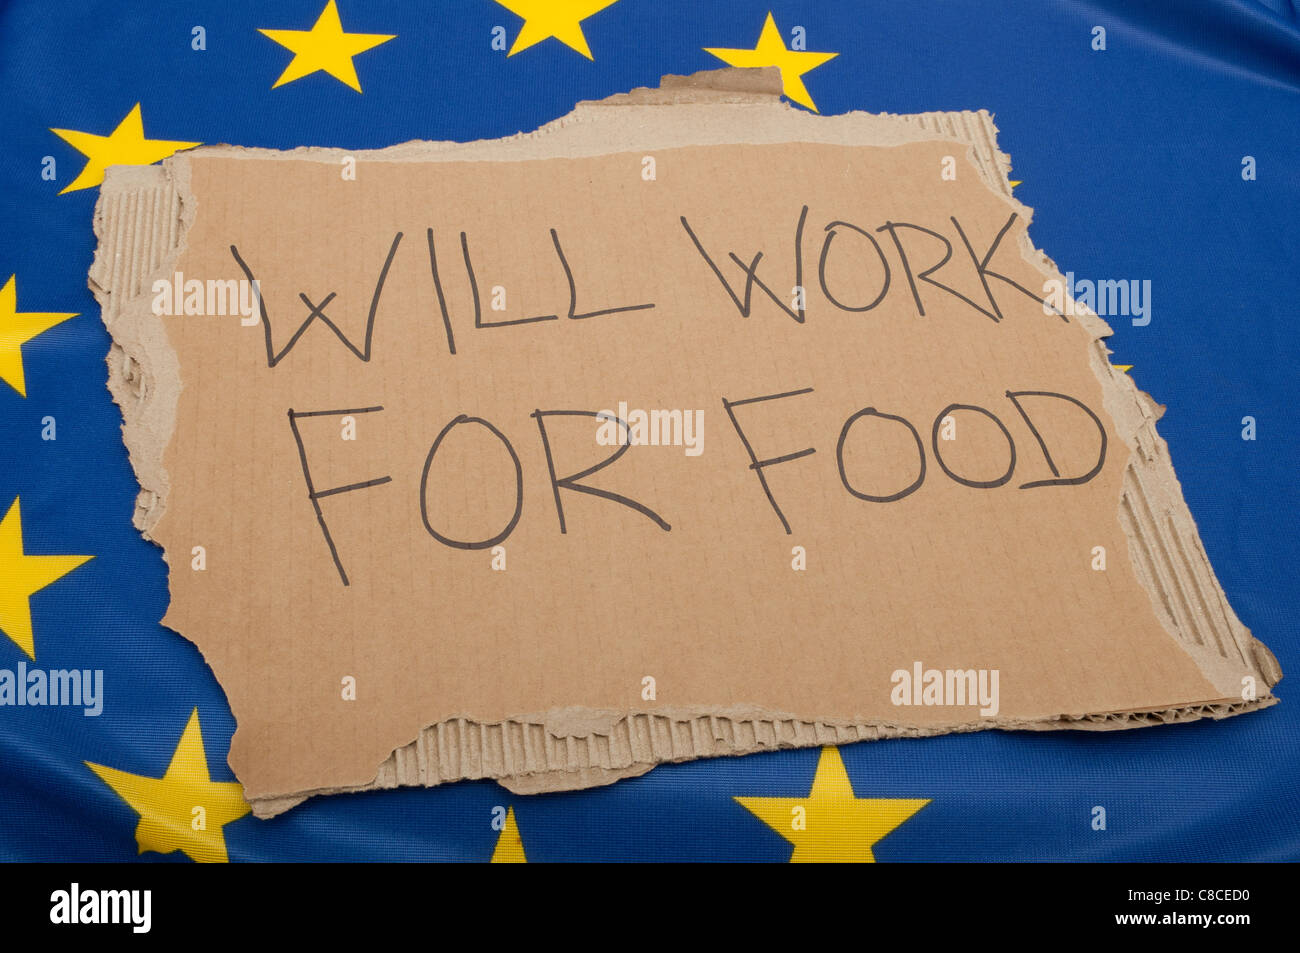 Unemployment in EU - Sign Will Work For Food on Cardboard on European Union Flag - Stock Image